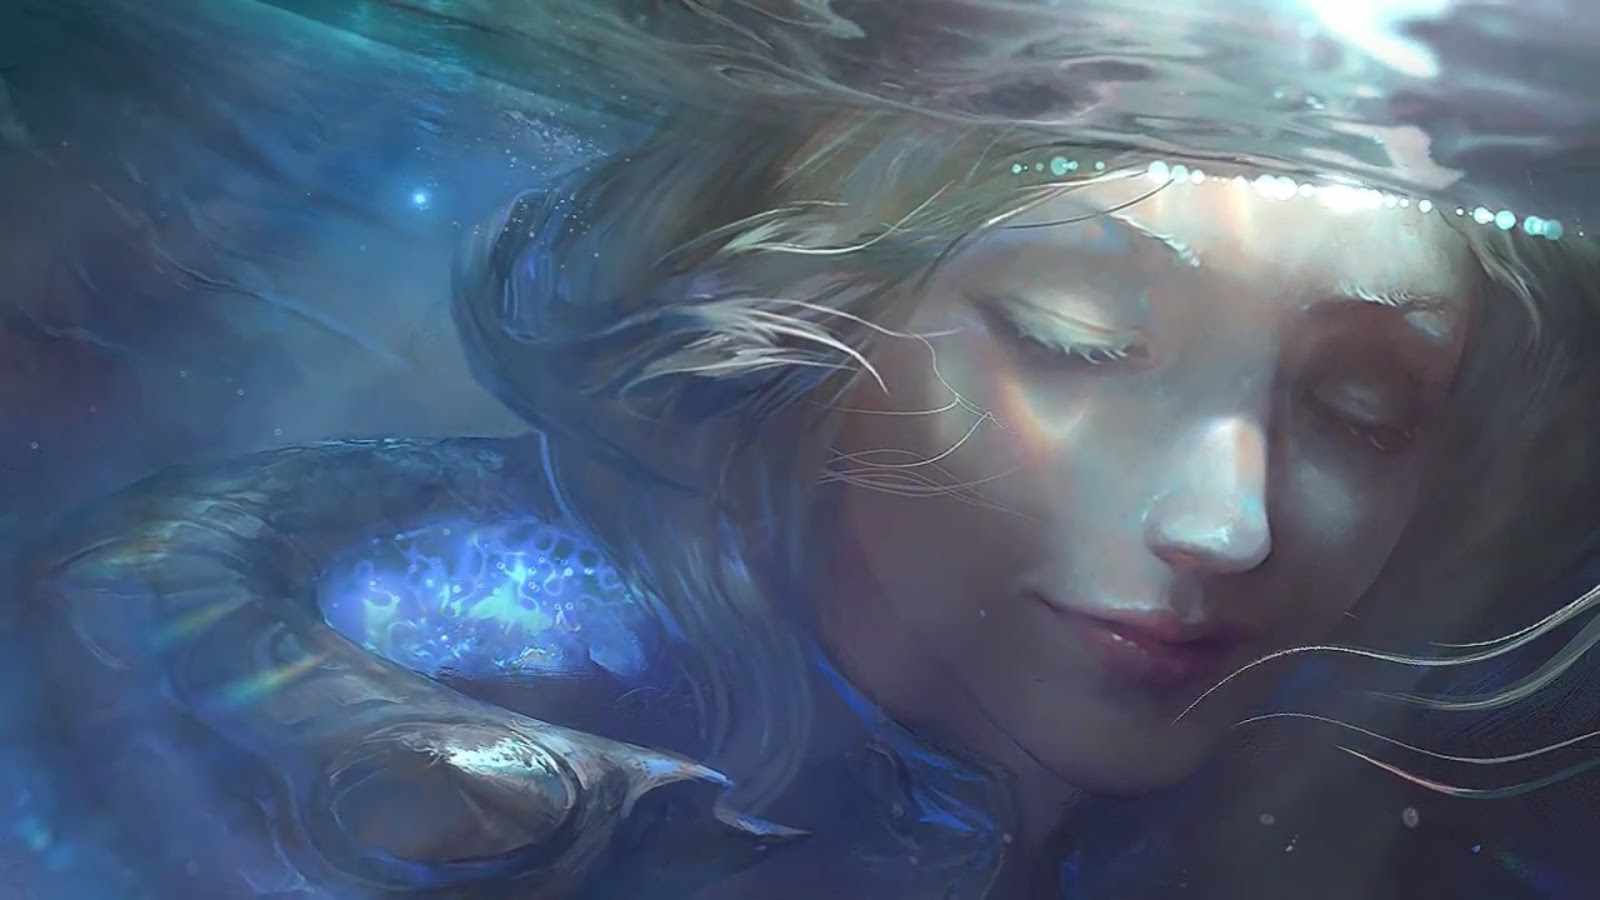 Surrender At 20 11 11 Pbe Update Elementalist Lux Login HD Wallpapers Download Free Images Wallpaper [1000image.com]